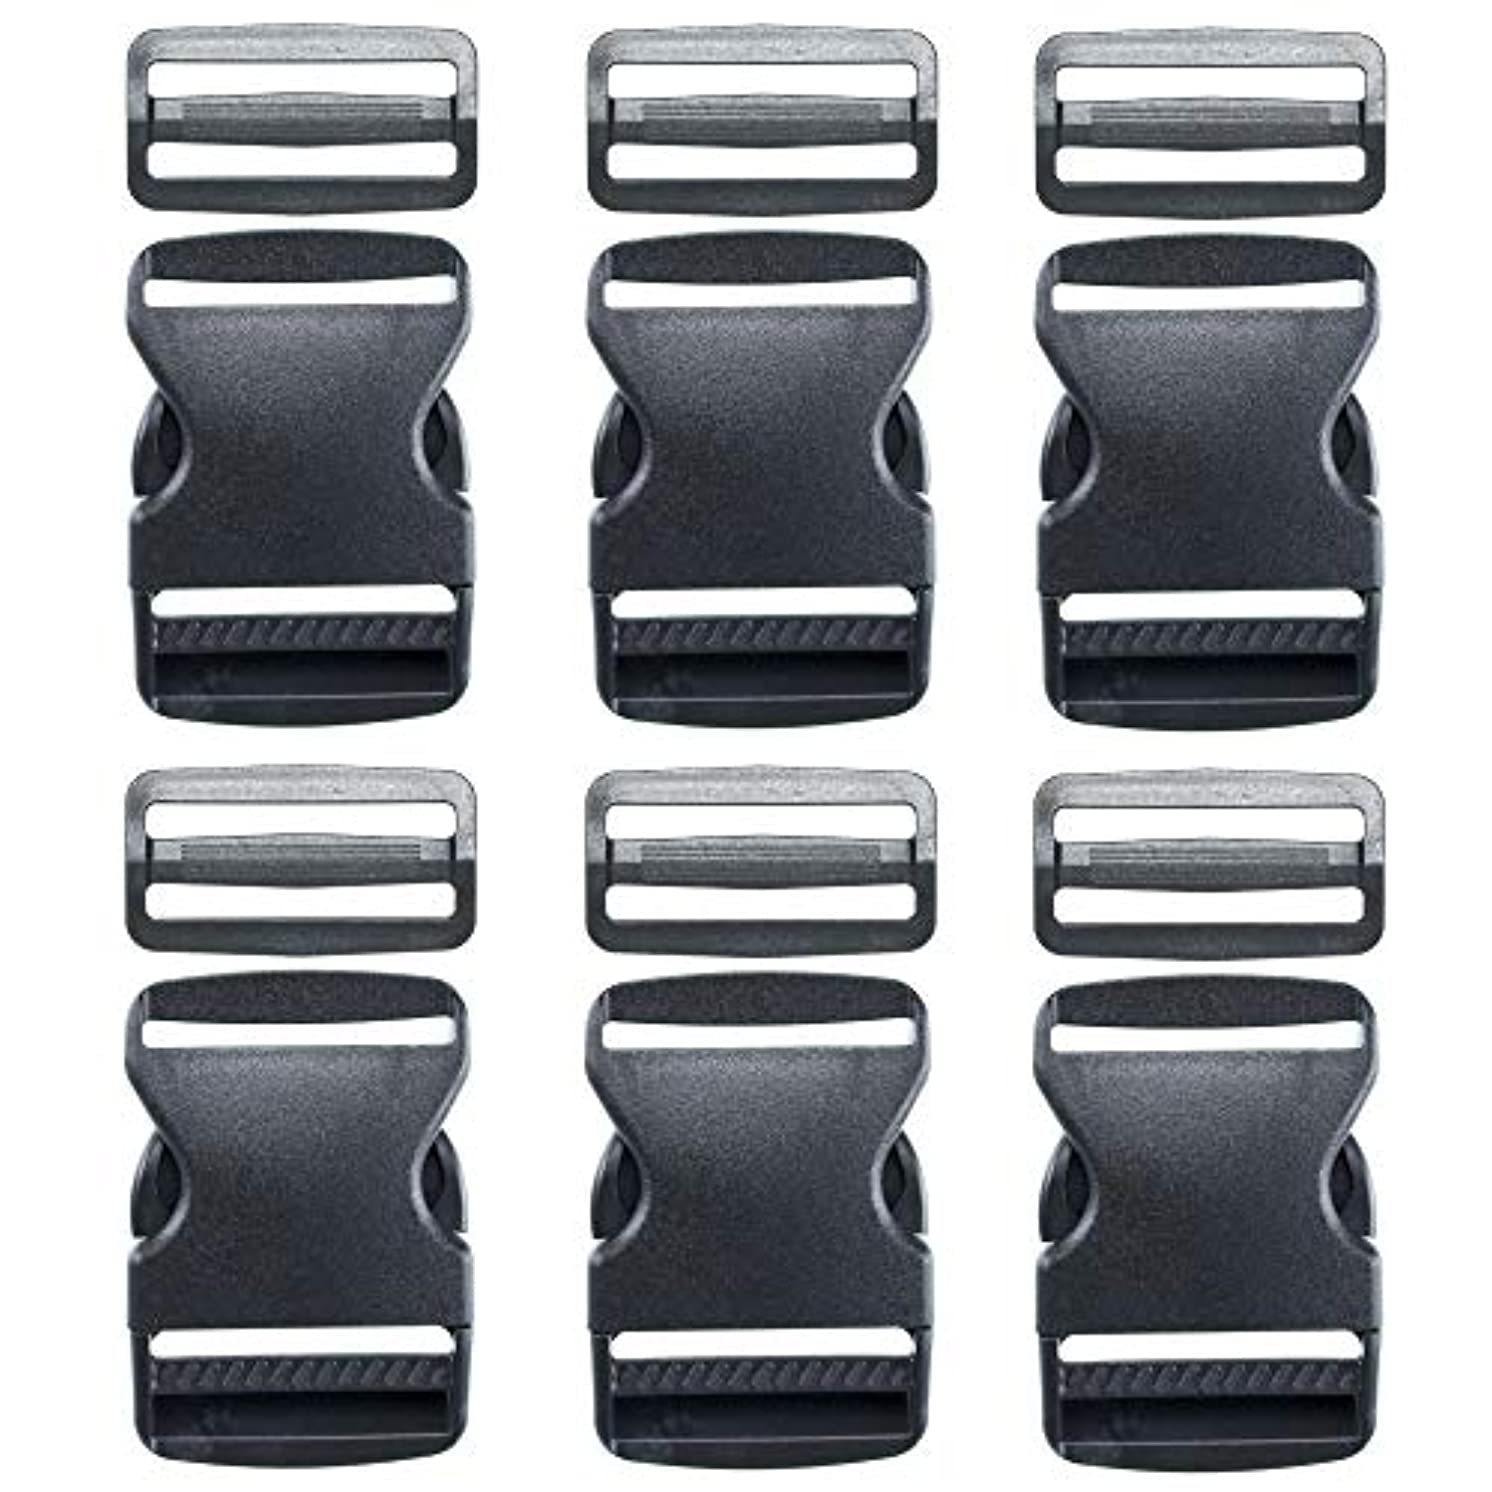 "6 – 2"" Set of Flat Heavy-Duty Side Release Buckles and Tri-Glide Slides - Dual Adjustable Quick Release Buckles and Durable Tri-Glides for Luggage Straps, Pet Collars, Backpacks, Repairs - Black"